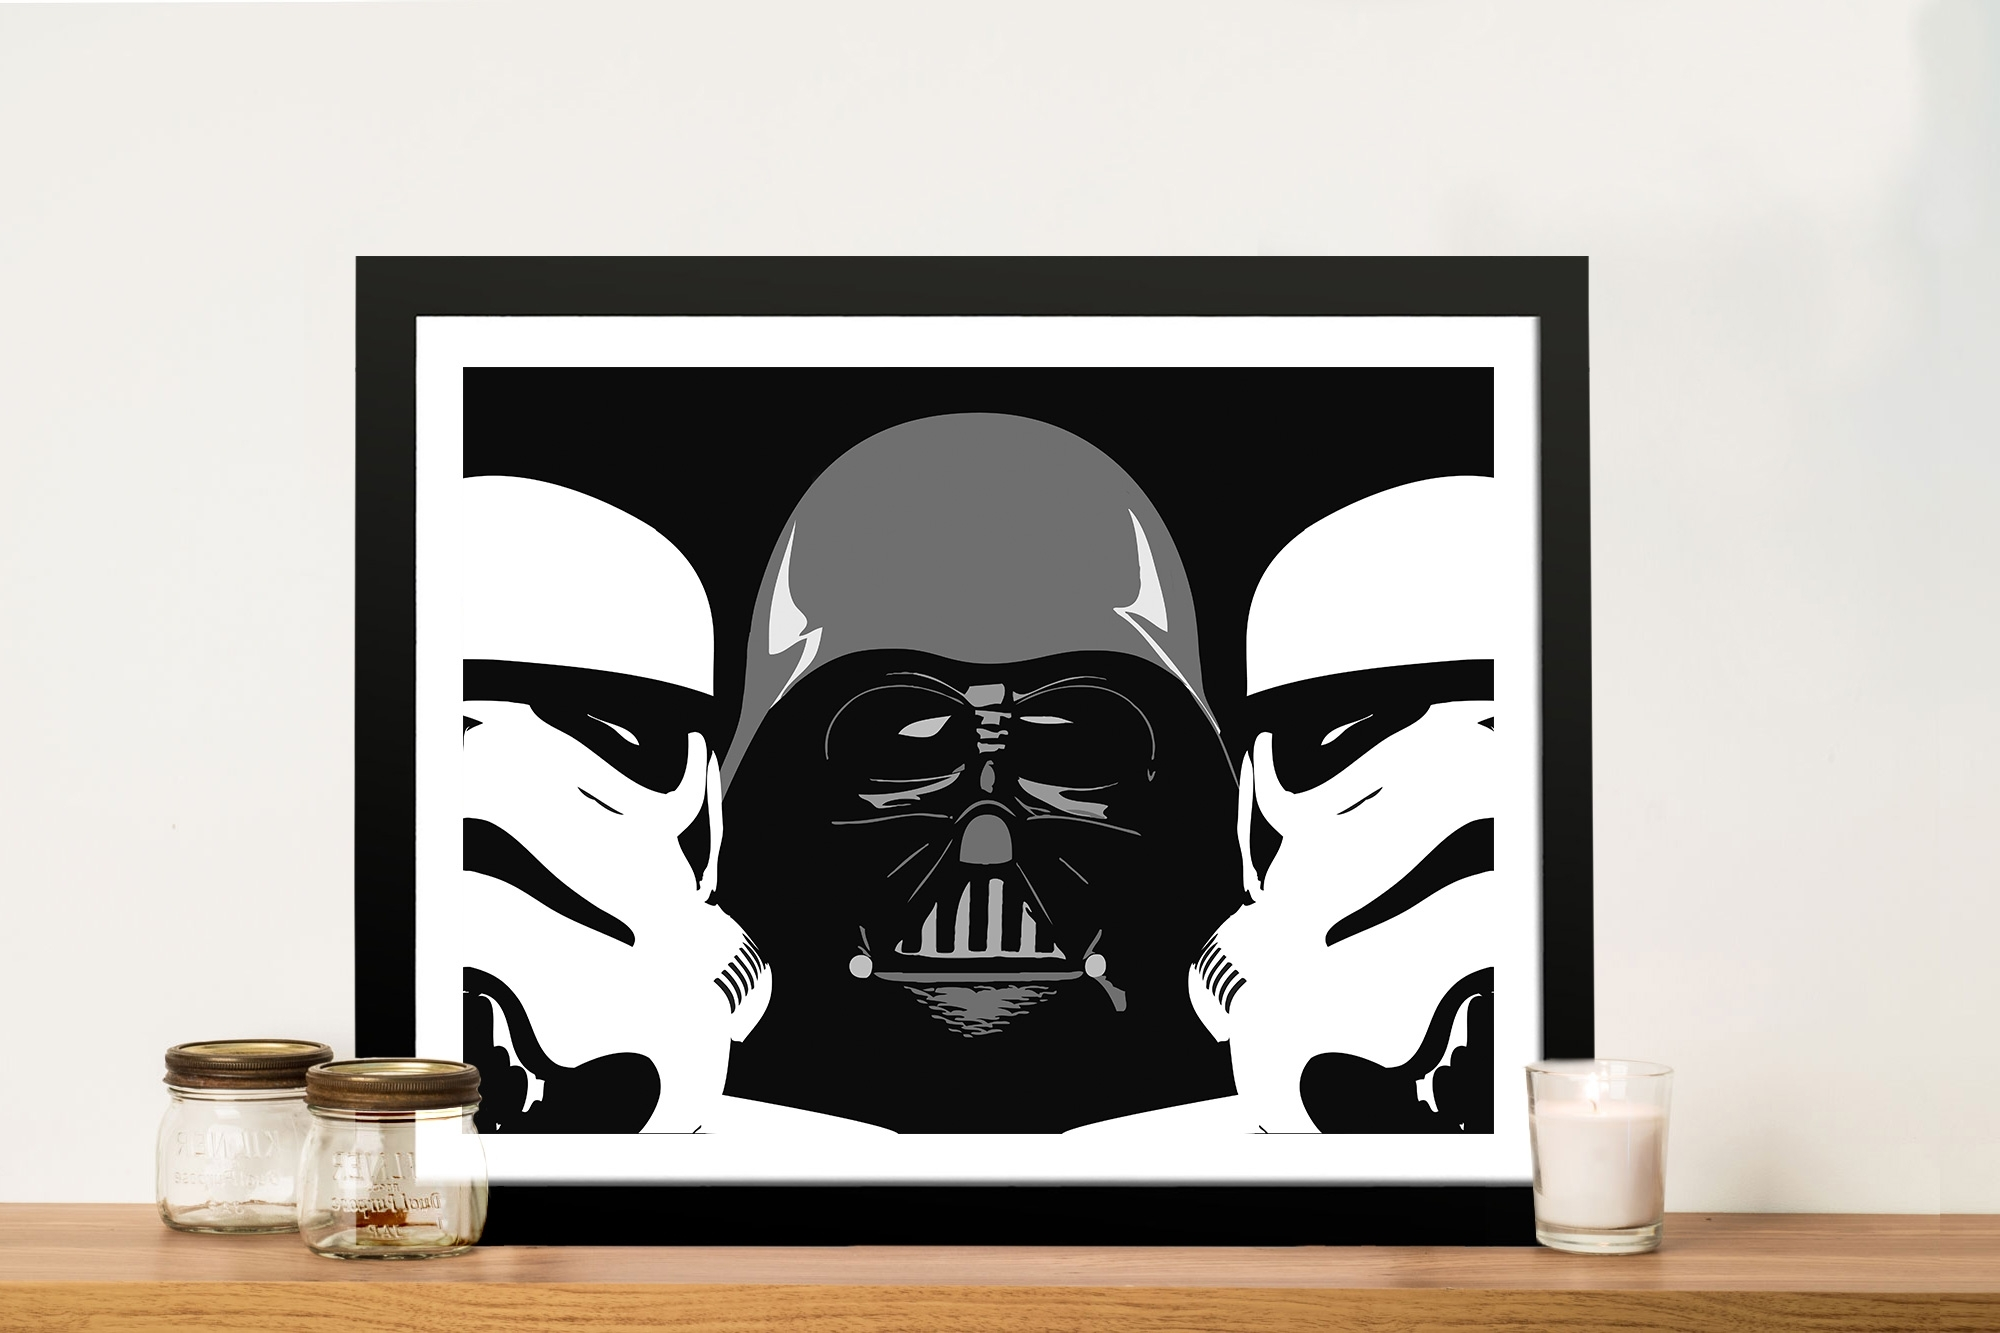 Three Amigos Darth Vader Wall Art – Canvas Prints Australia Regarding Latest Darth Vader Wall Art (View 6 of 15)